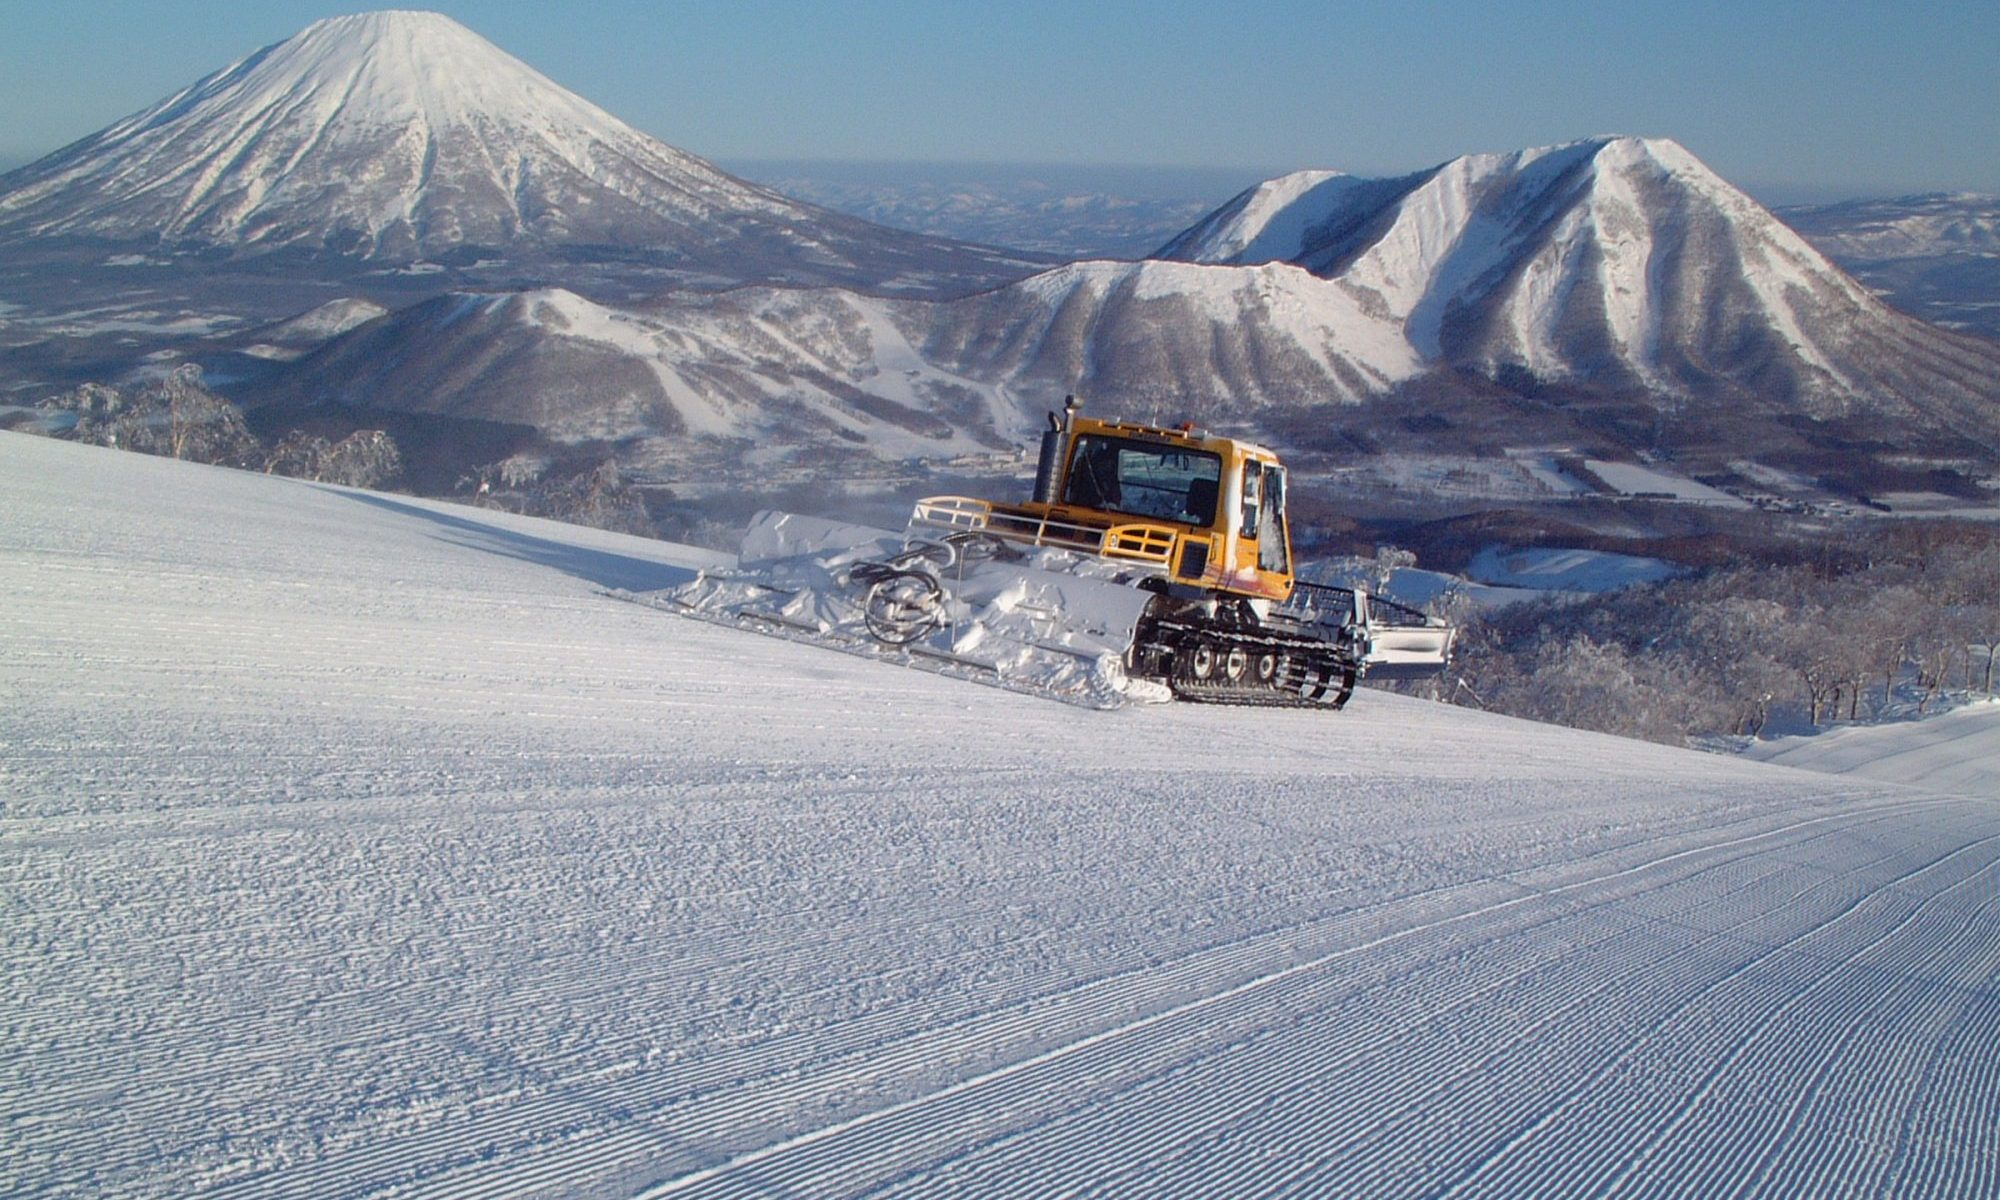 Rusutsu will be EPIC for the 2019-20 ski season. Rusutsu, the Japanese Resort joins the EPIC Pass for the 2019-20 ski season. Photo: Rusutsu Resort.